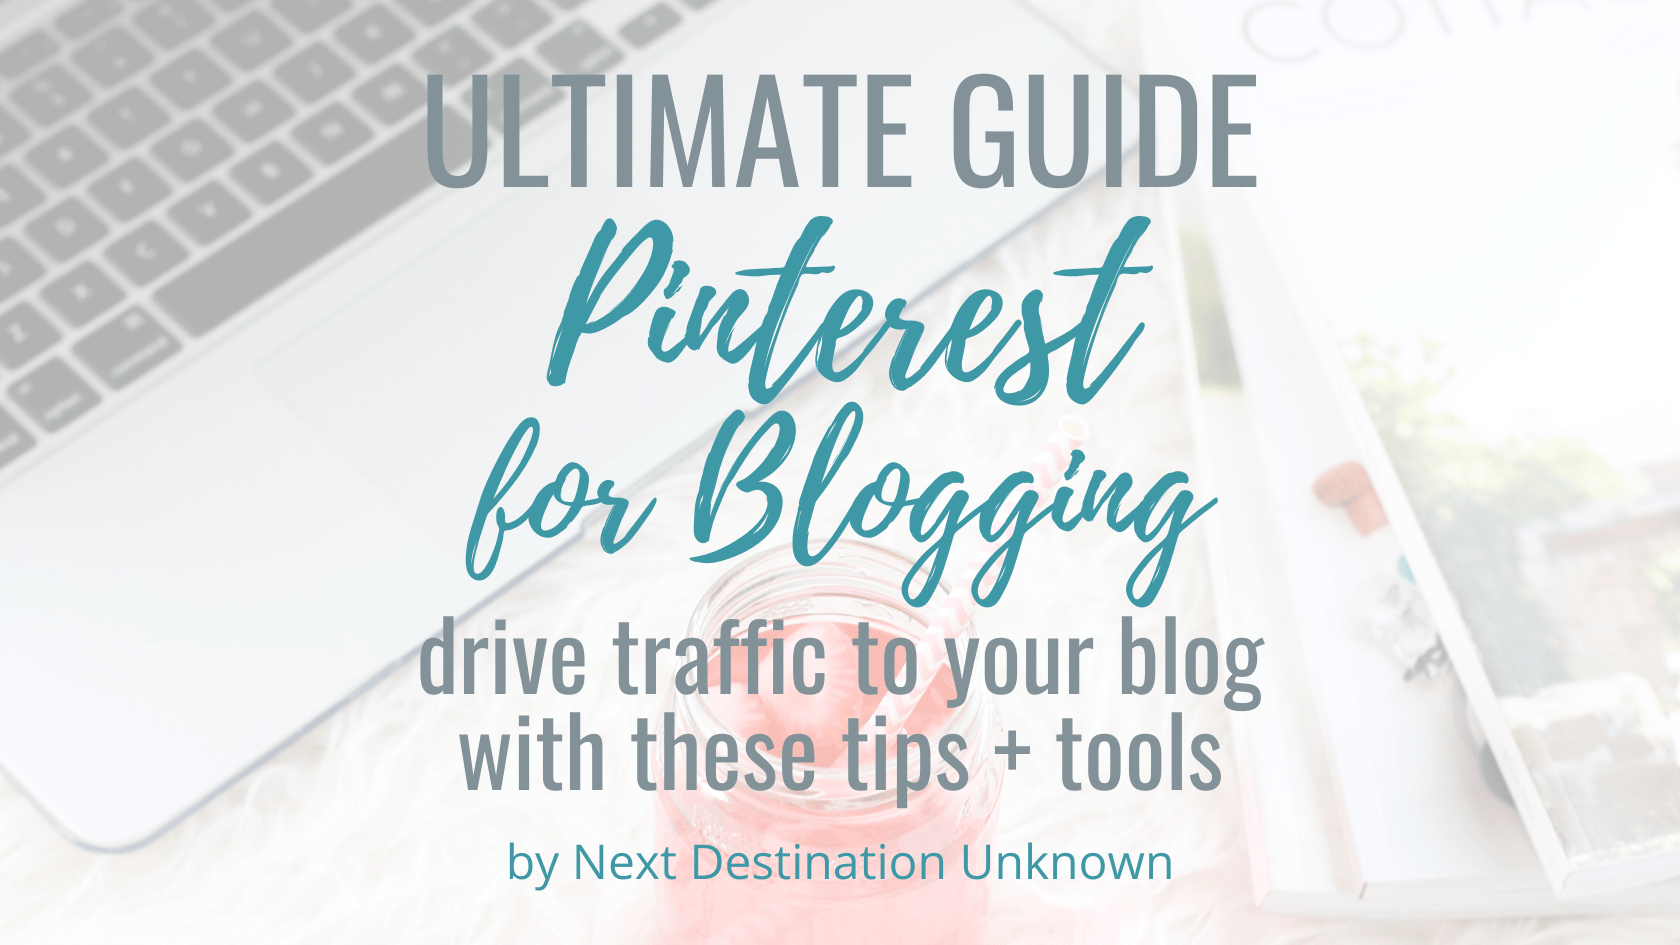 The Ultimate Guide to Pinterest for Blogging - Here are the Best Tips & Tools for How to Use Pinterest to Drive Traffic to Your Blog